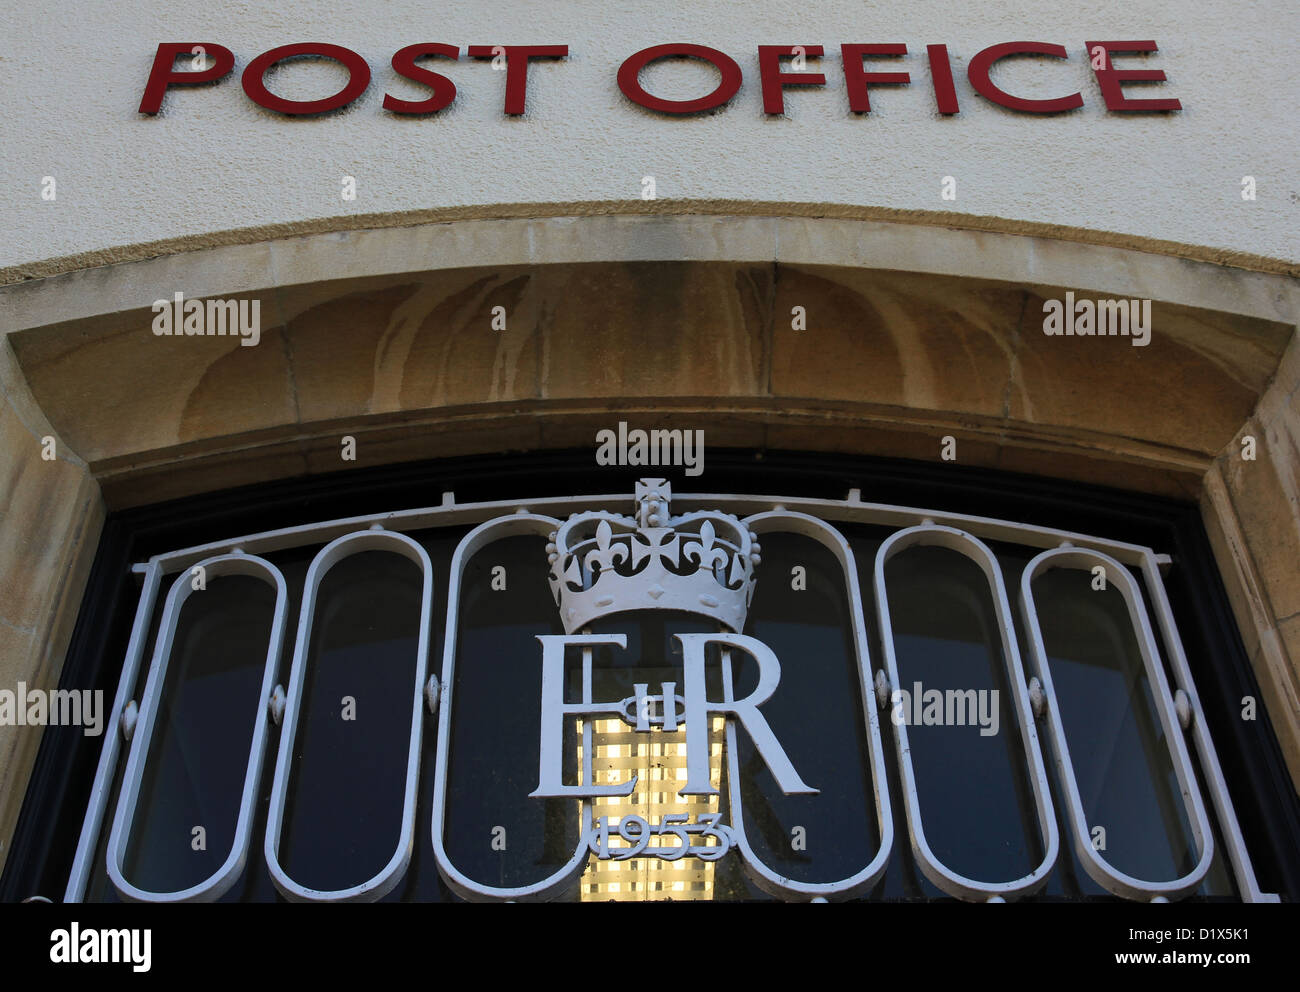 Post Office entrance with royal insignia in Diss Norfolk England UK - Stock Image